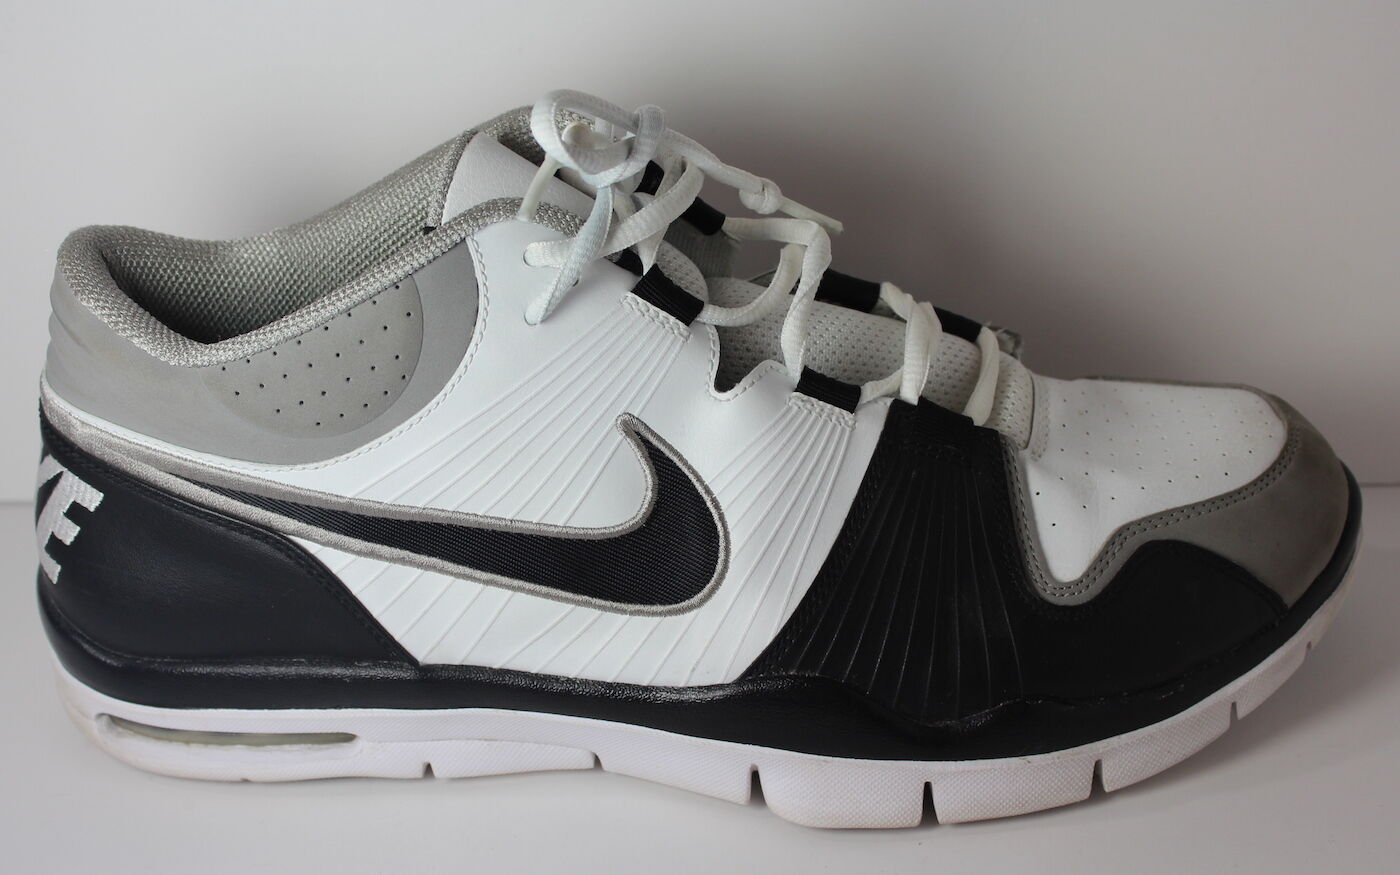 Nike Trainer 1 2009 Men's Size 14 Grey White Black Shoes